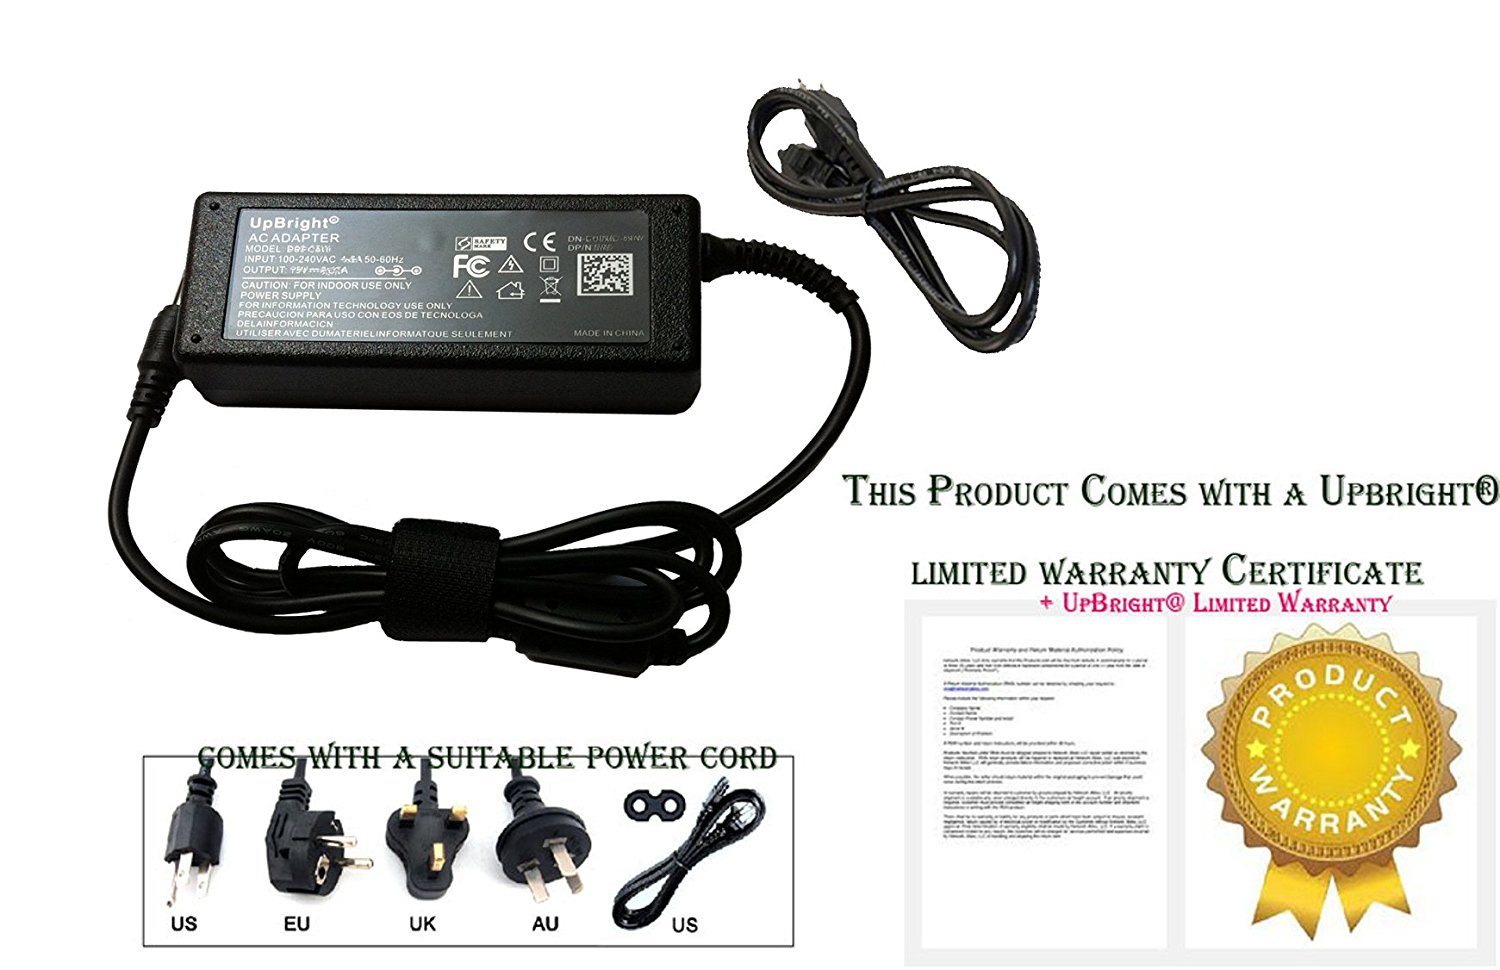 BestCH AC//DC Adapter for Magicard Pronto Photo ID Card Printer 3649-0001 Power Supply Cord Cable PS Charger Input 100-240 VAC Worldwide Use Mains PSU